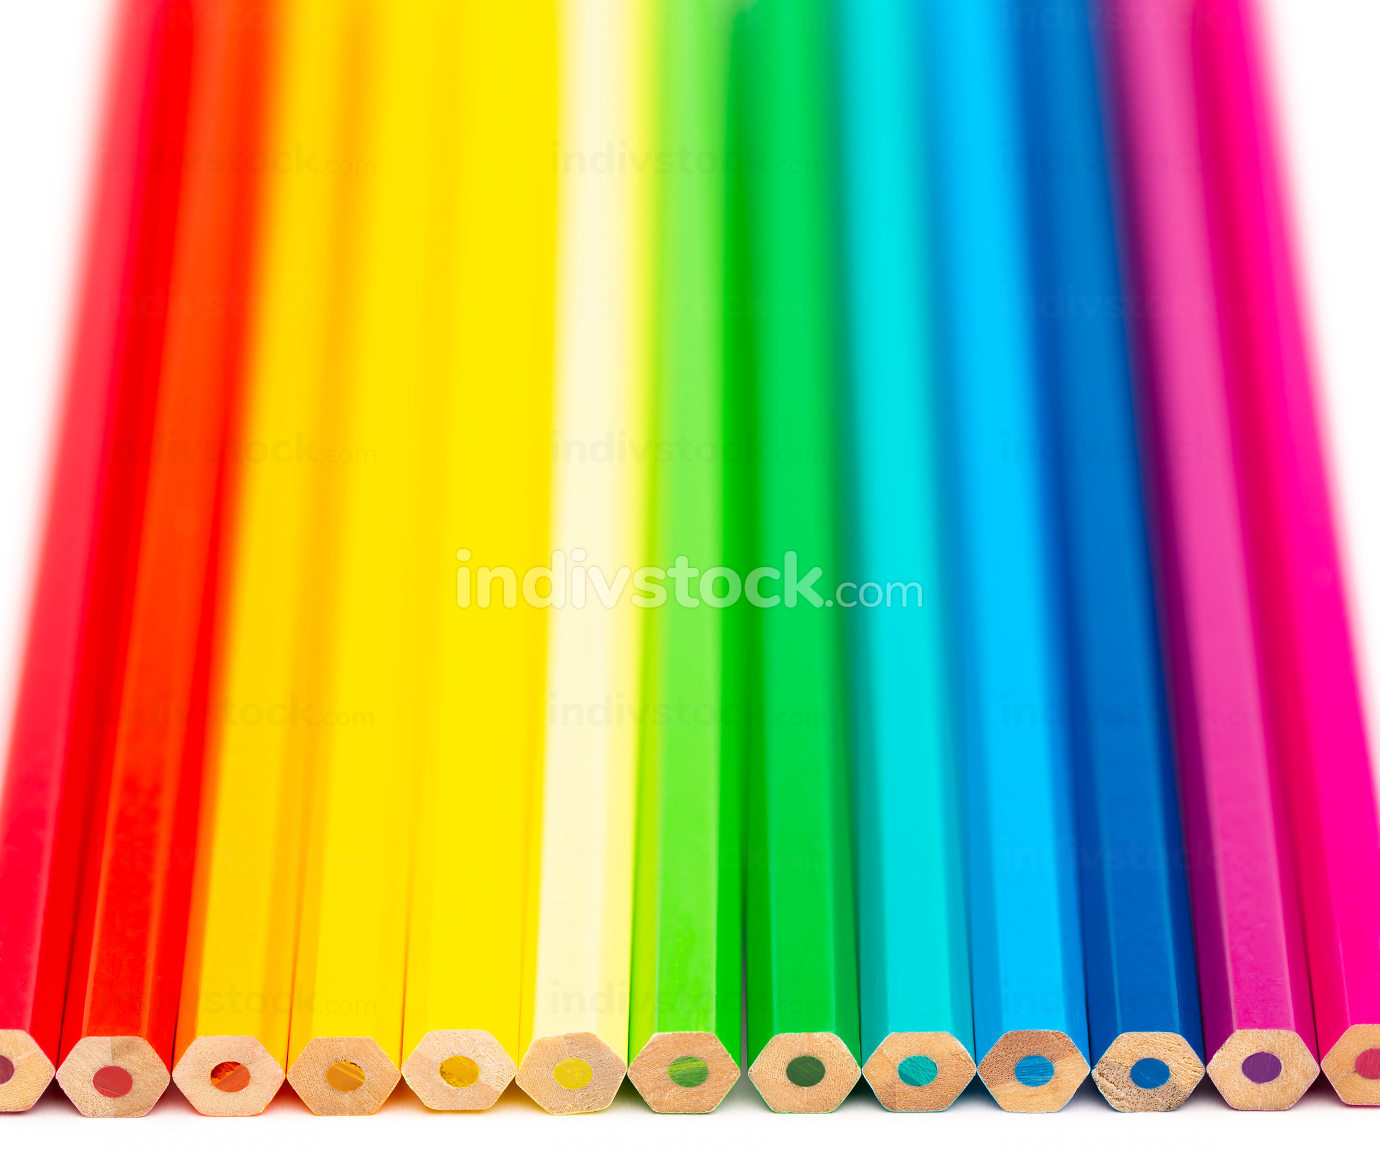 Colorful wooden pencils on a white background